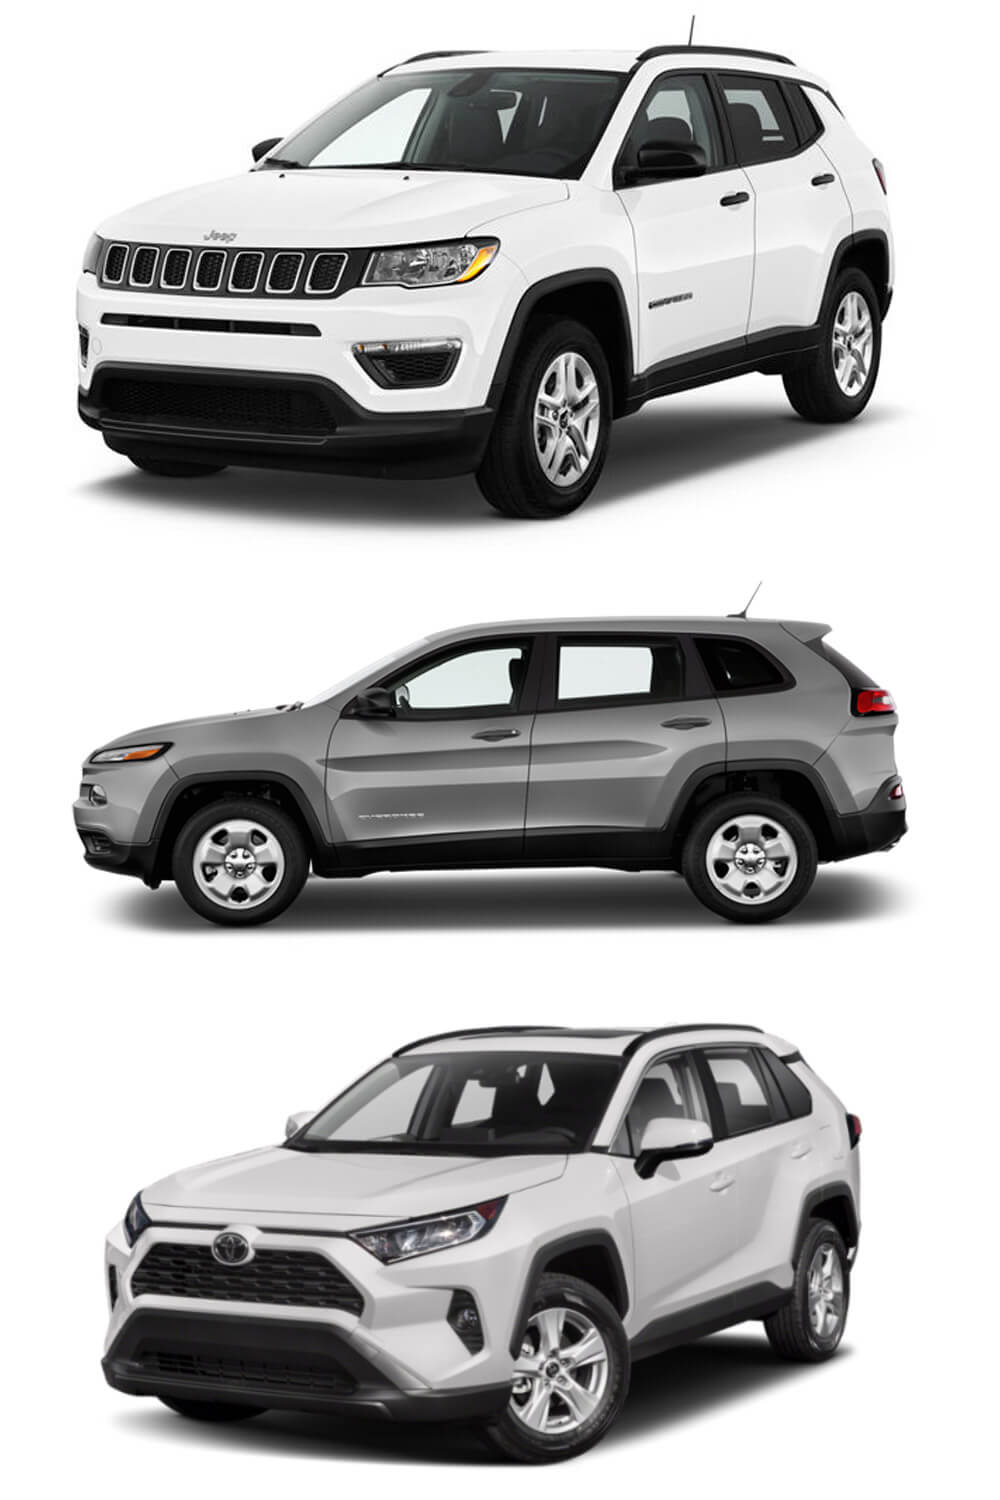 Jeep Compass or Cherokee